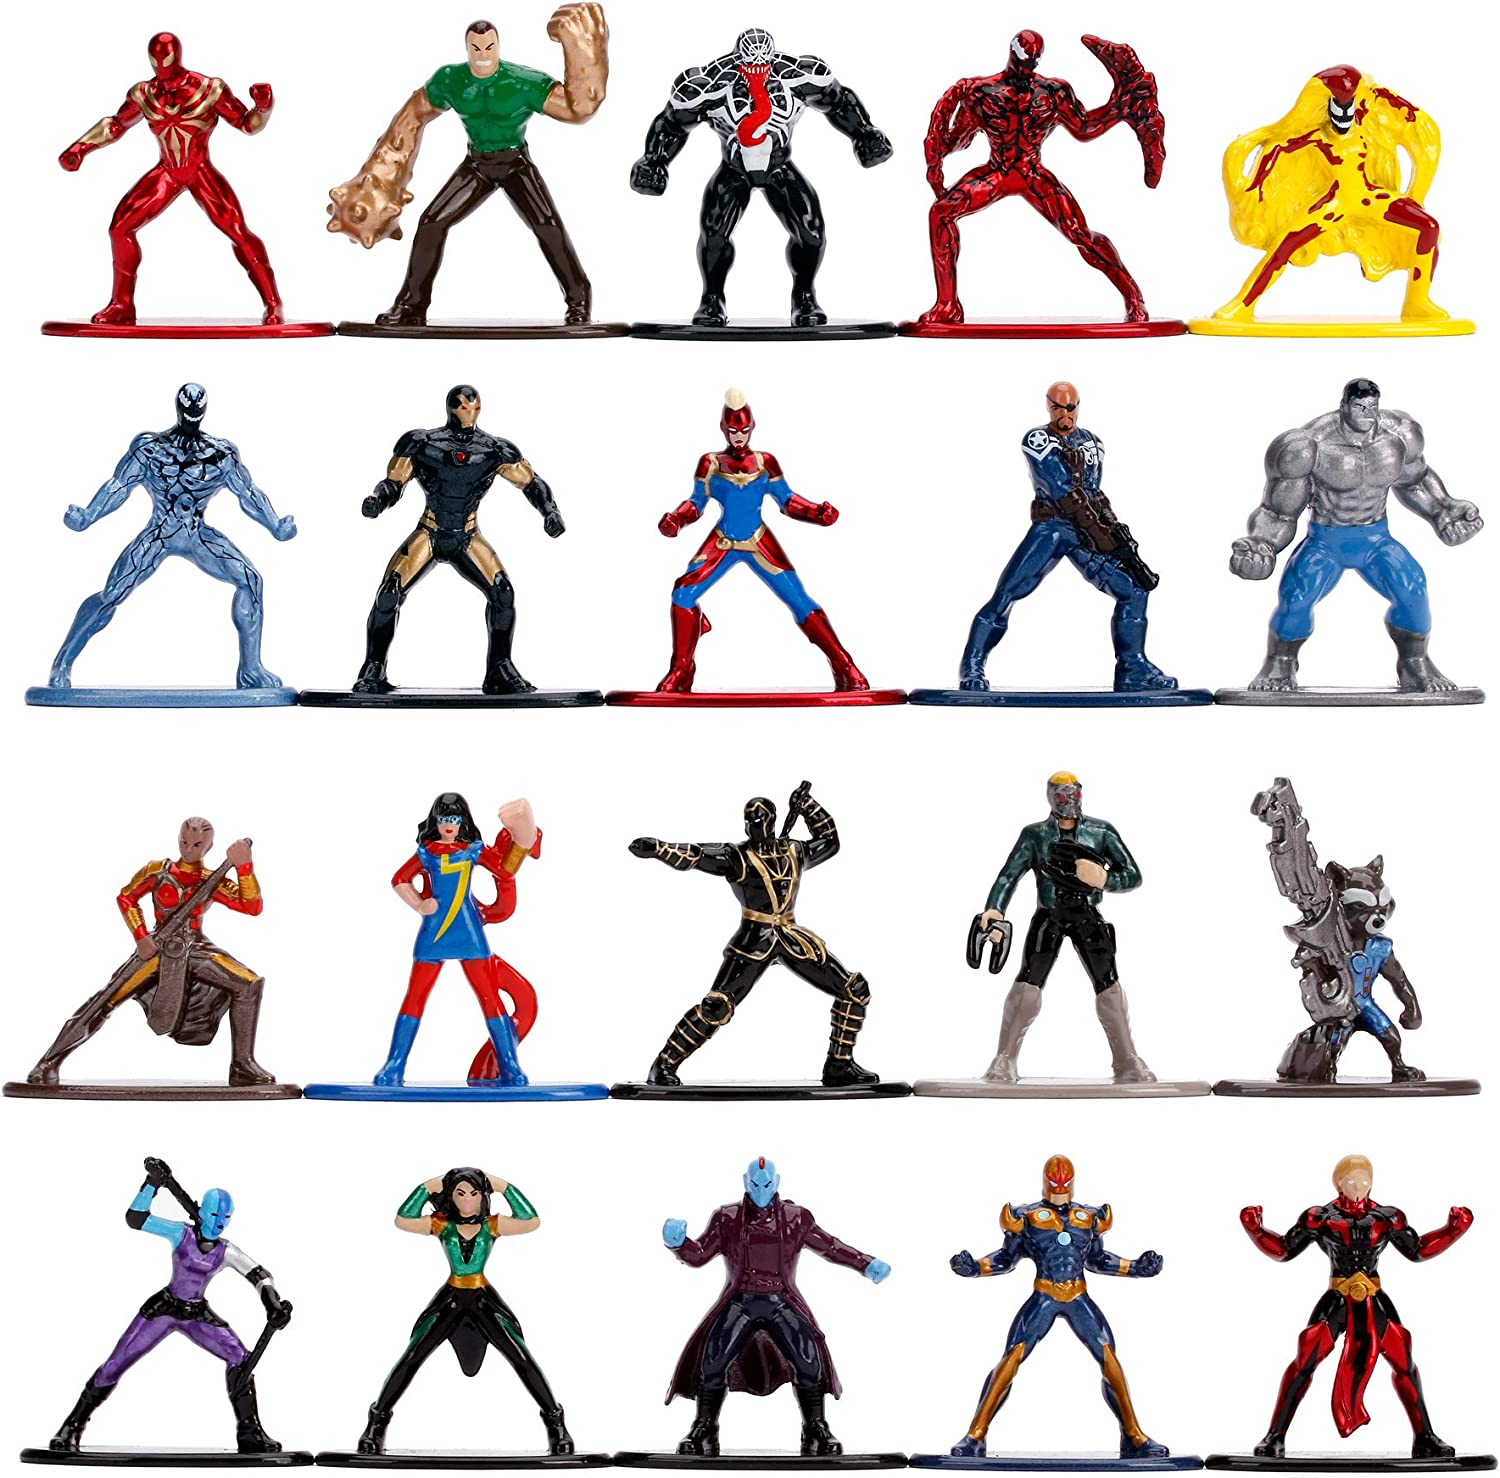 Jada Toys 253225010 Wave 3 Marvel 20-Pack Nano Collectable Figures, Wave 3, 20 Pieces/Set 36% OFF £19.99 @ Amazon